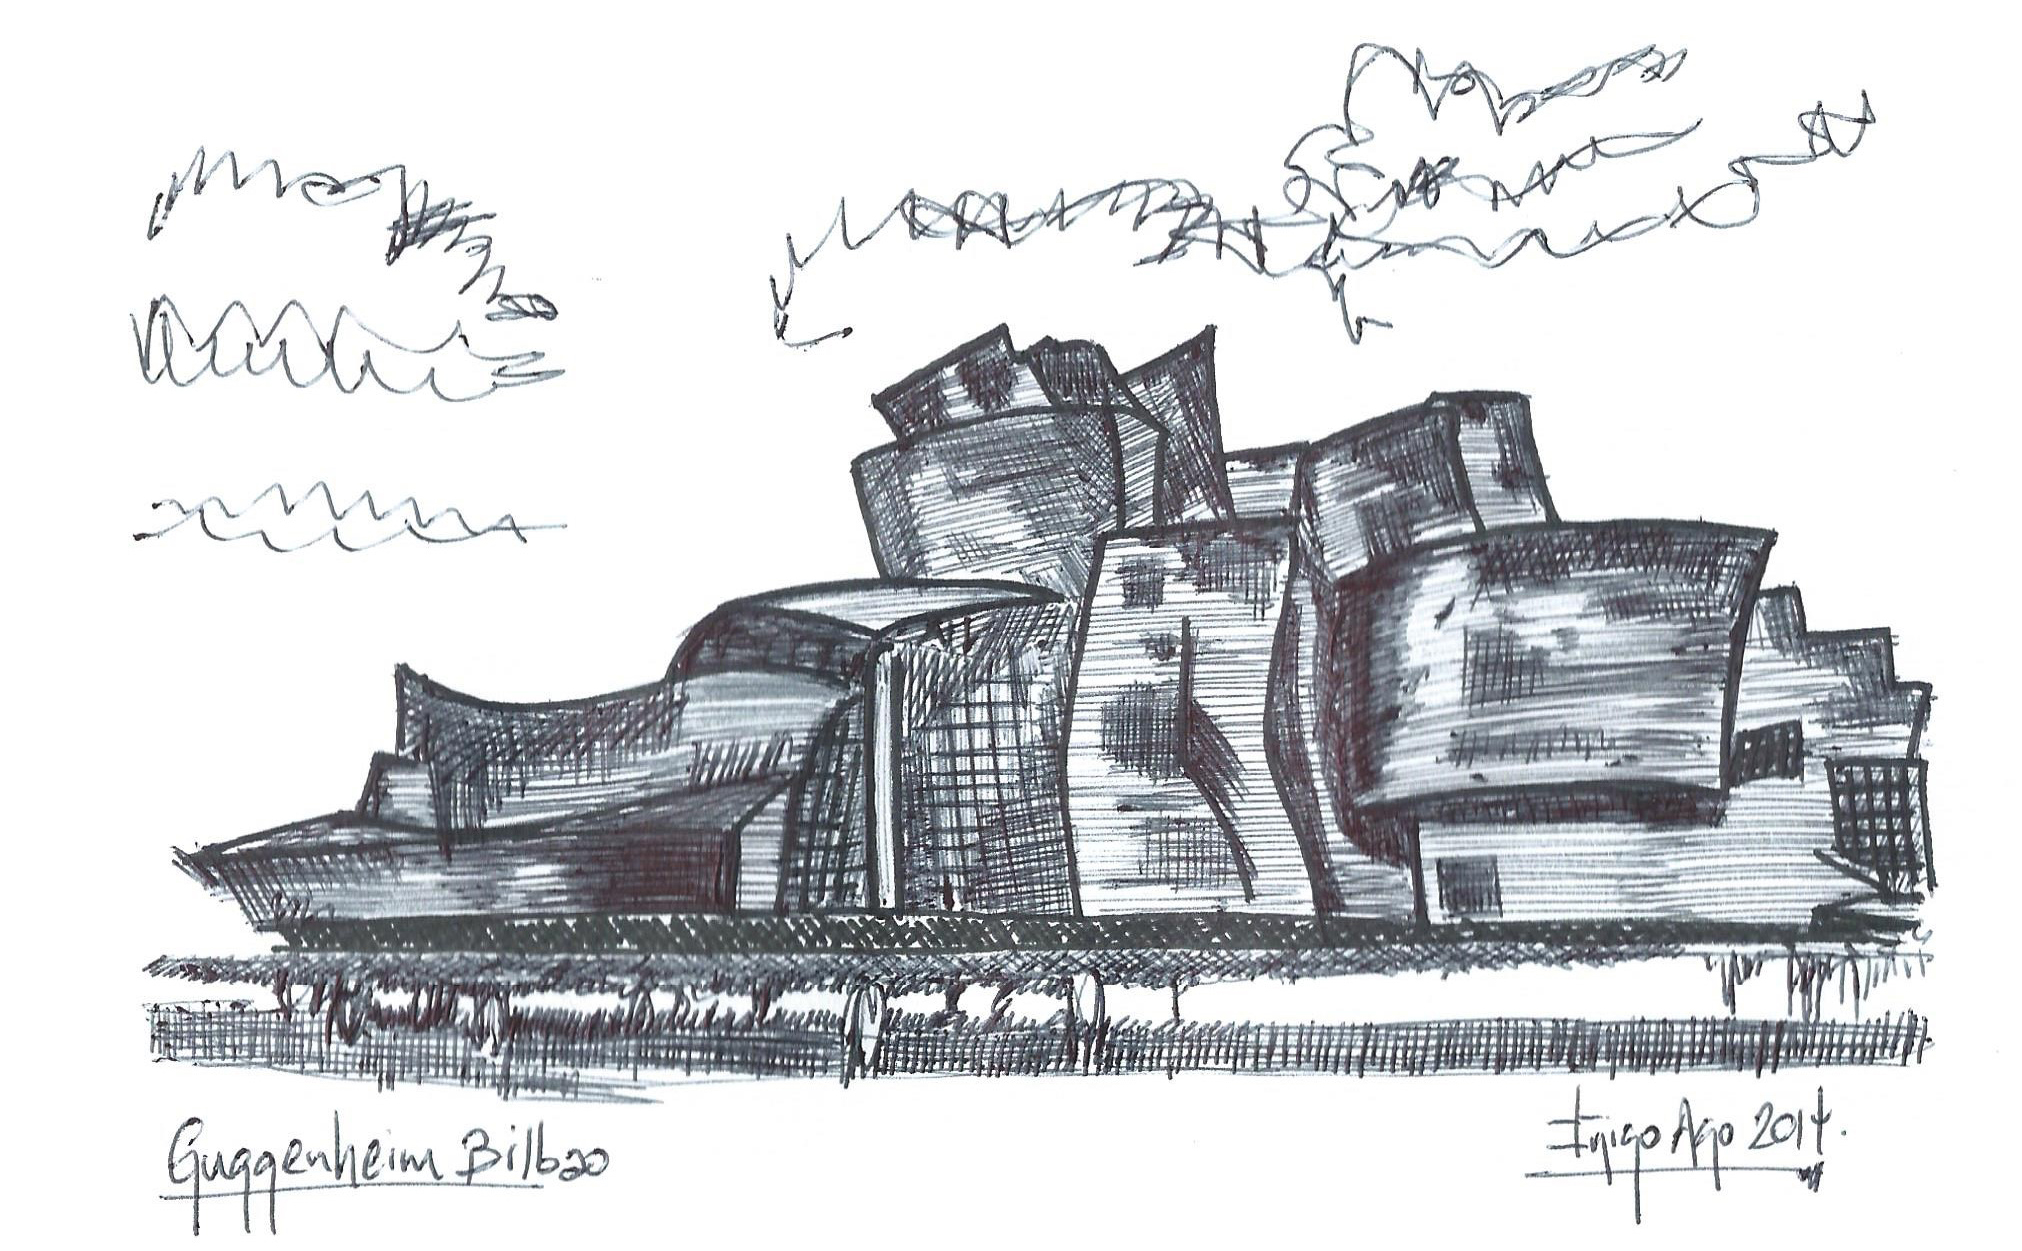 5IMAGES_BILBAO